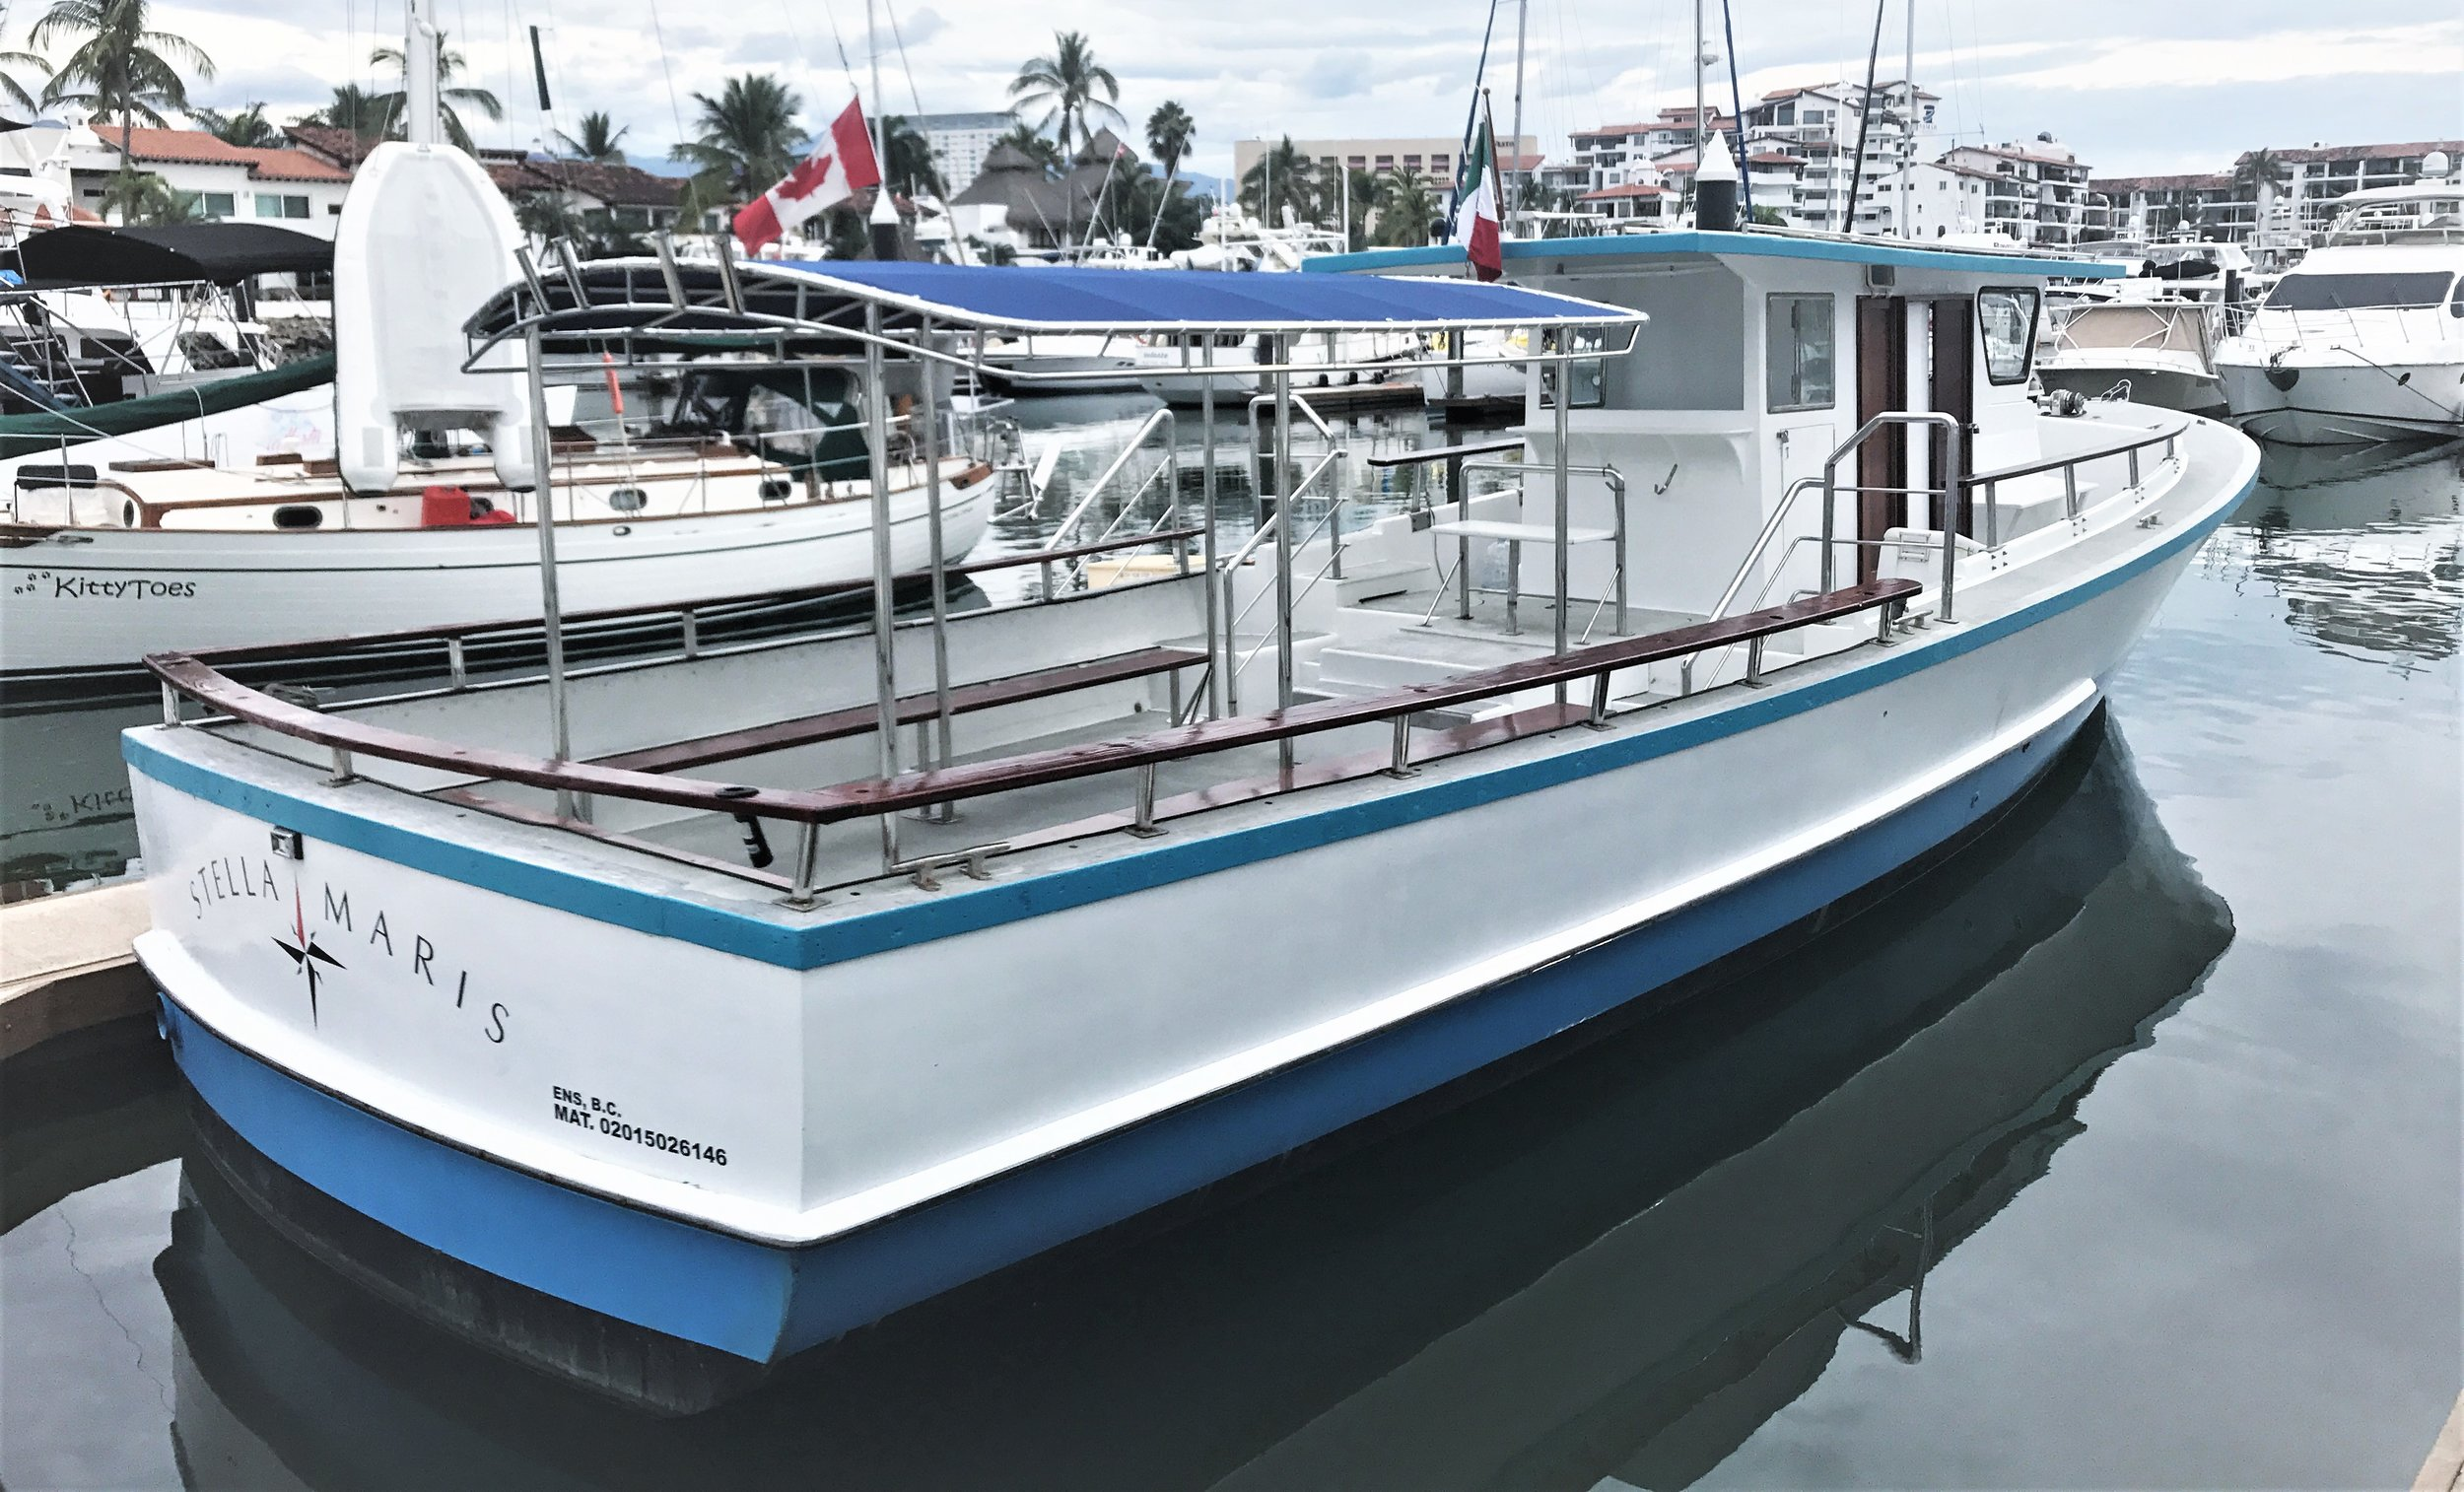 50 Foot boat - Welcome aboard the Stella Maris! 50 Foot boat US Coast Guard approved boat, with separate restrooms for ladies and gents!